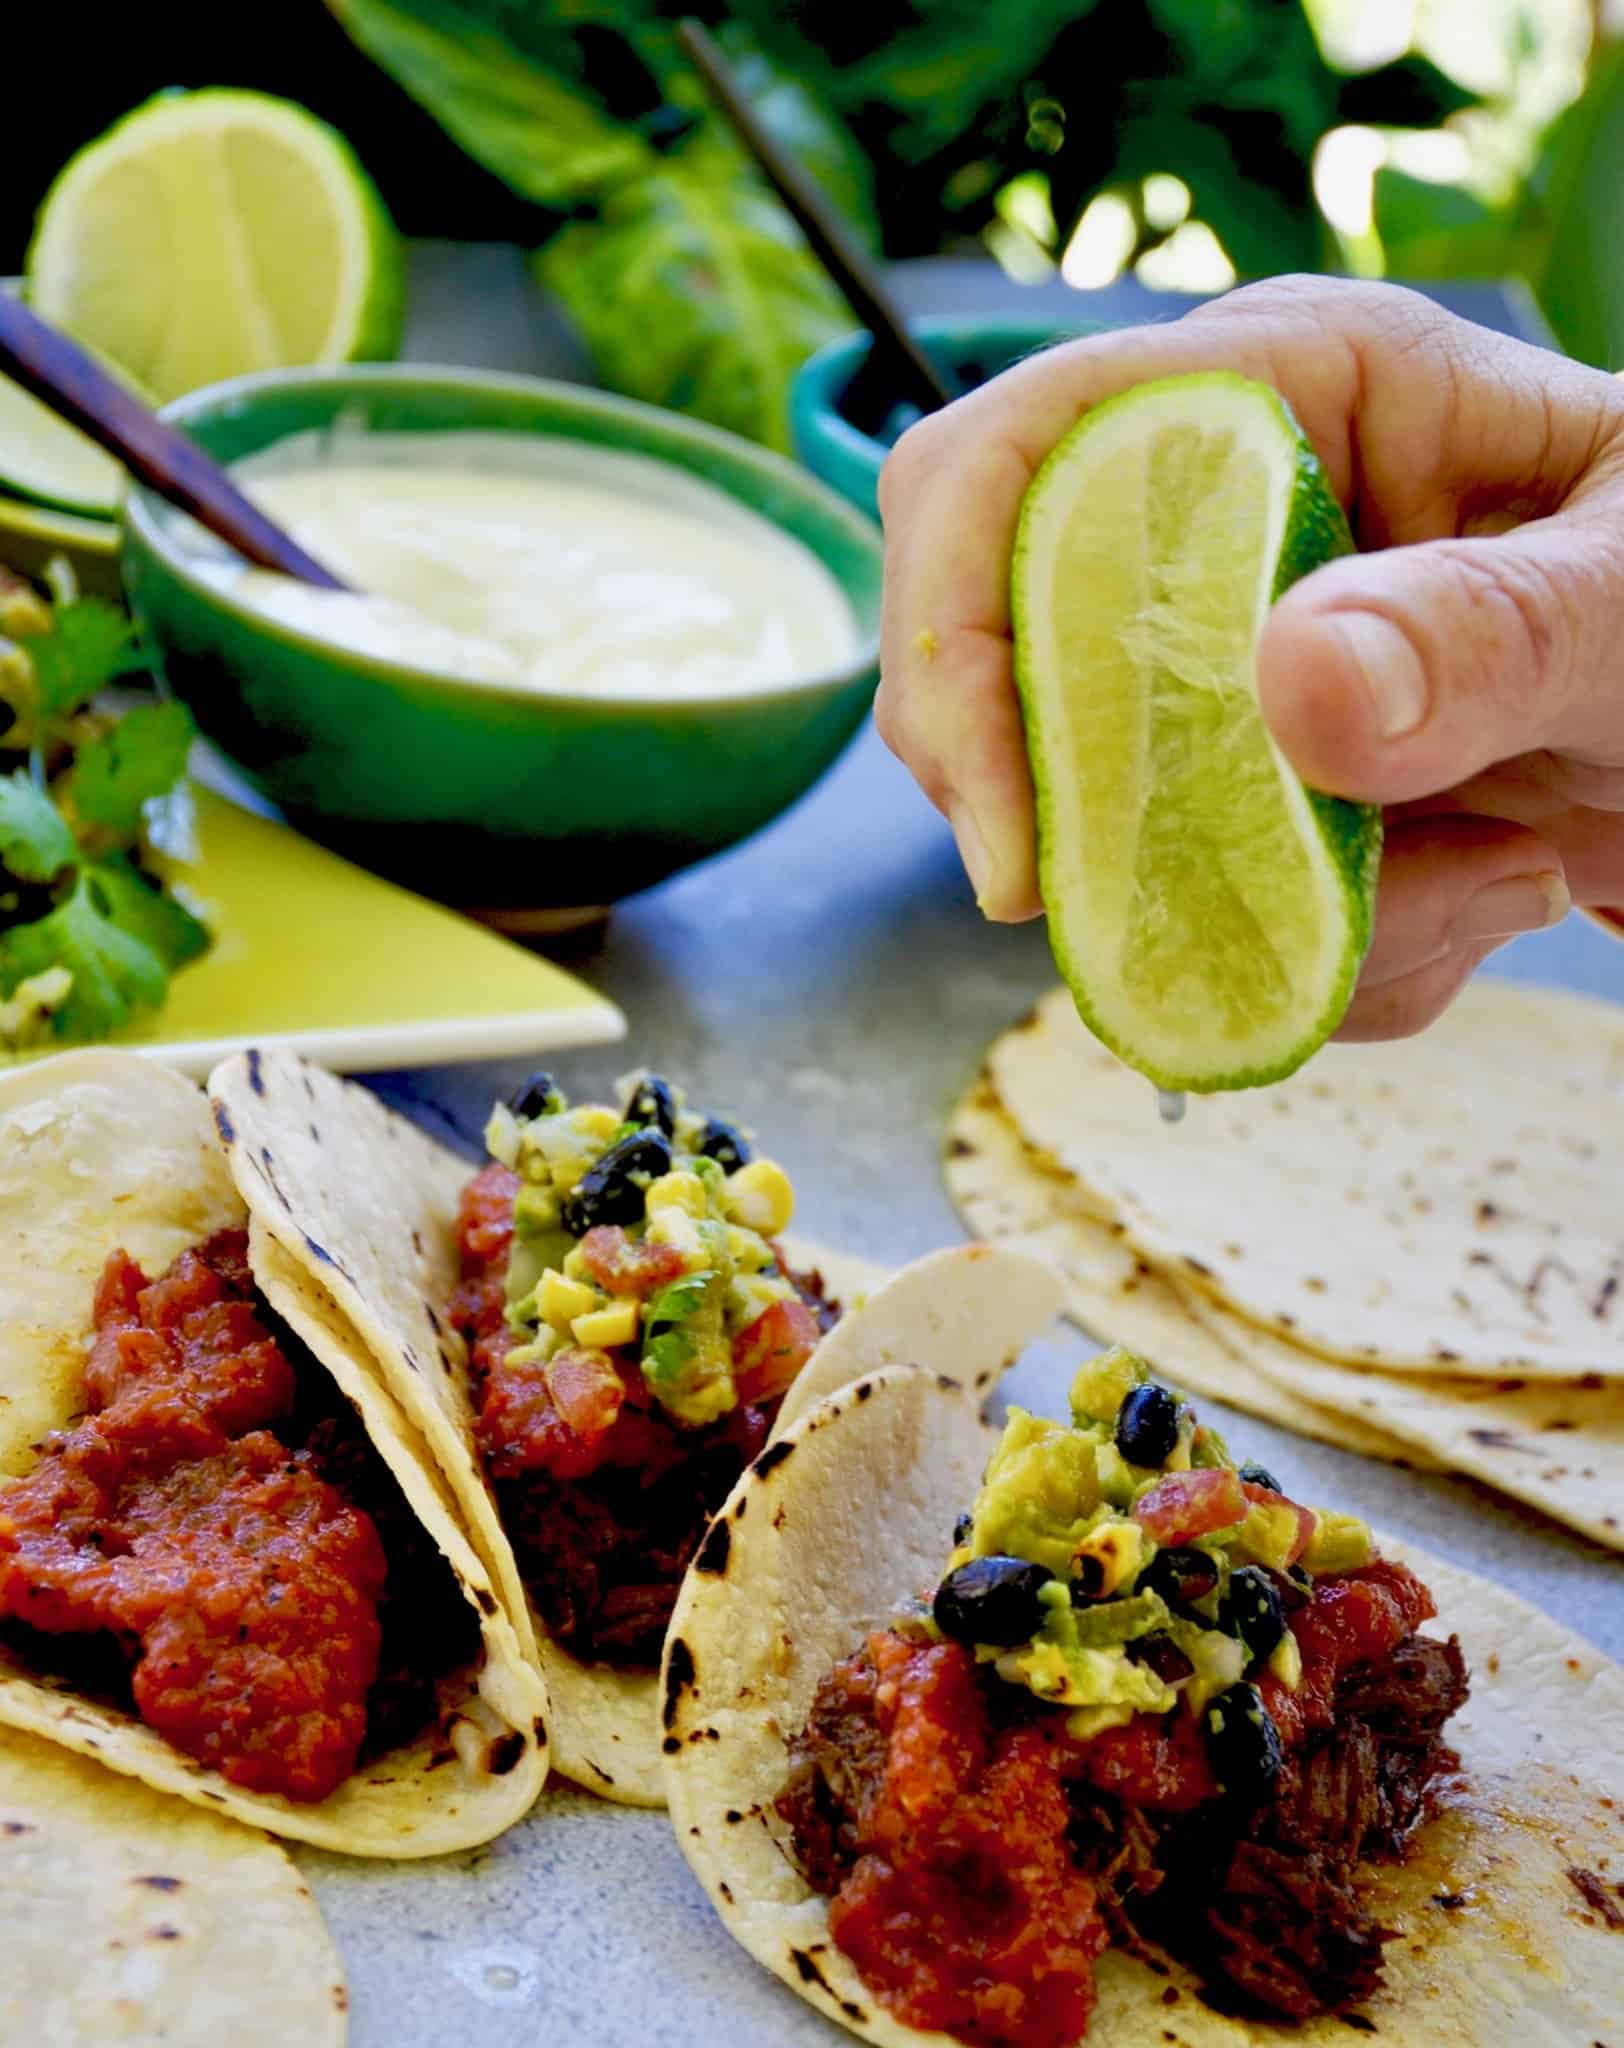 smoky red salsa on a taco with salsa and a lime half being squeezed over the taco